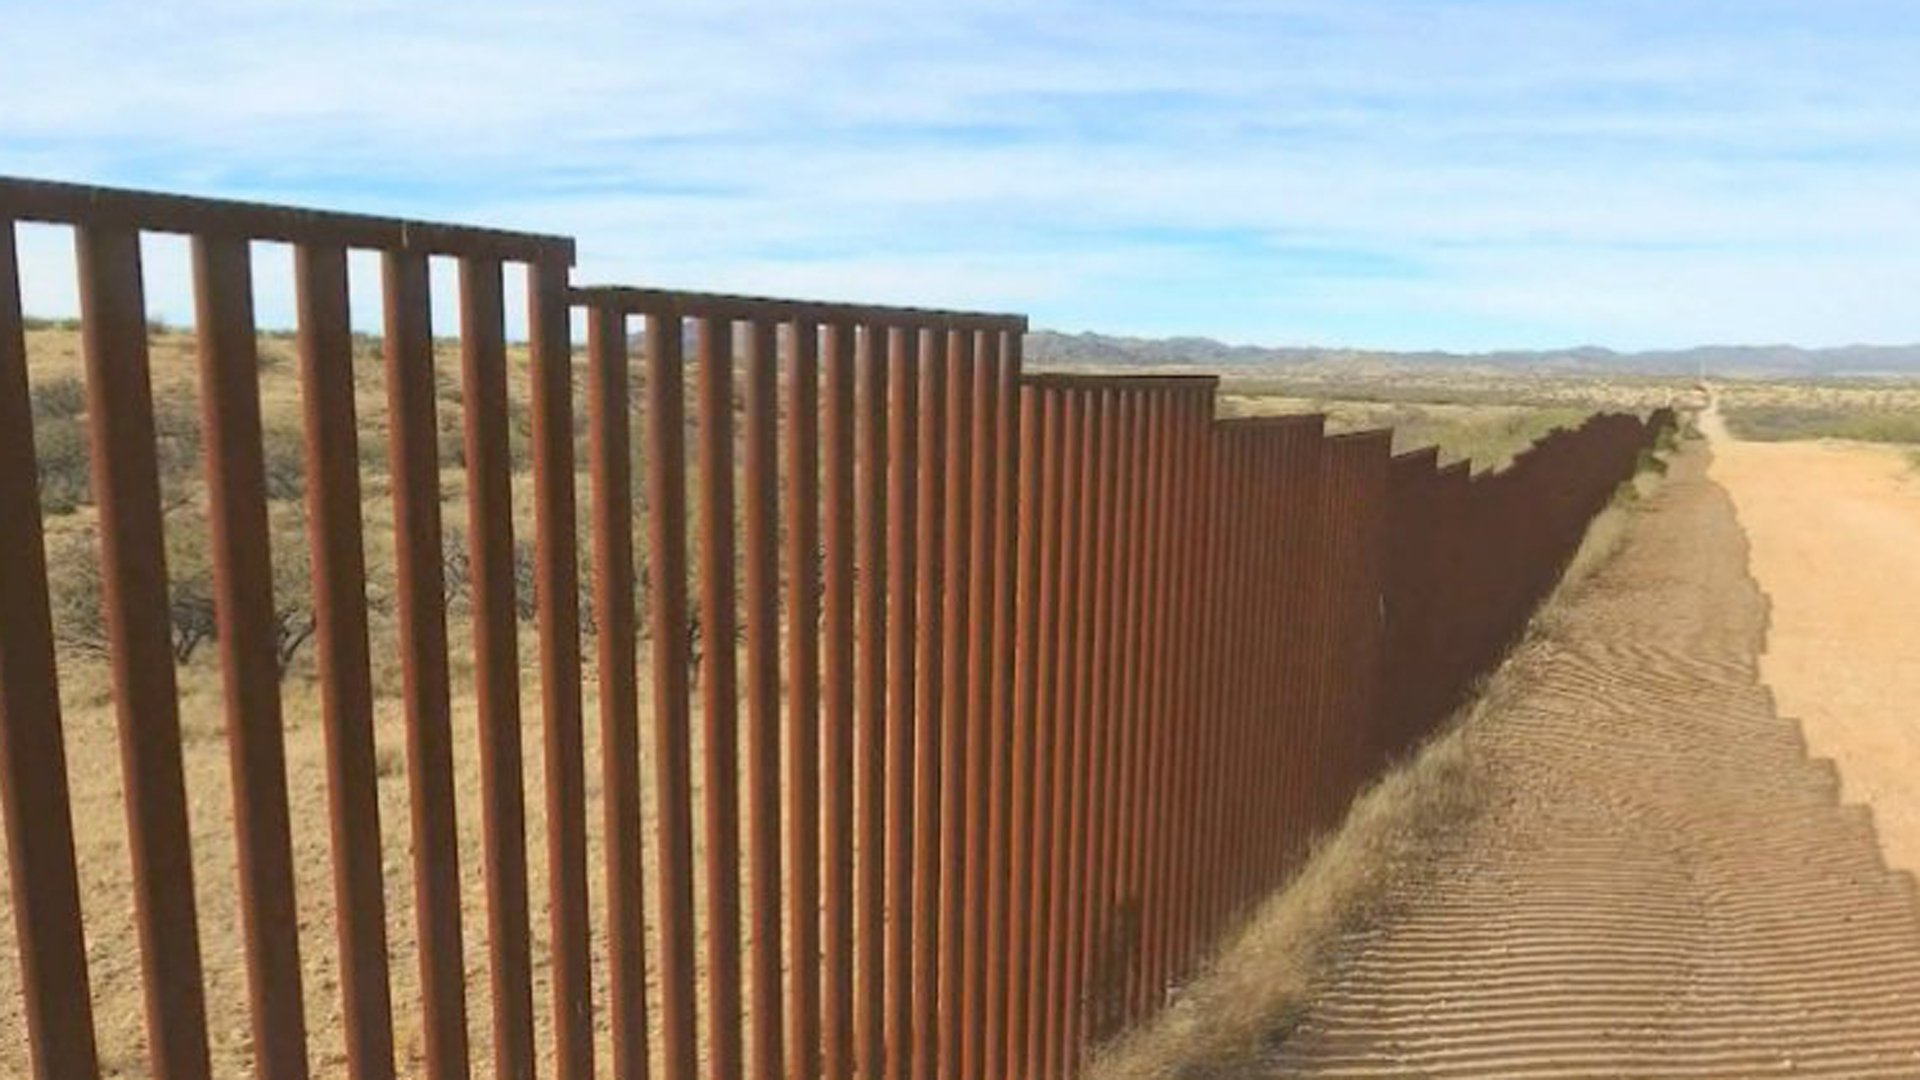 A prototype of the border wall promised by President Trump is seen here. (Credit: CNN)